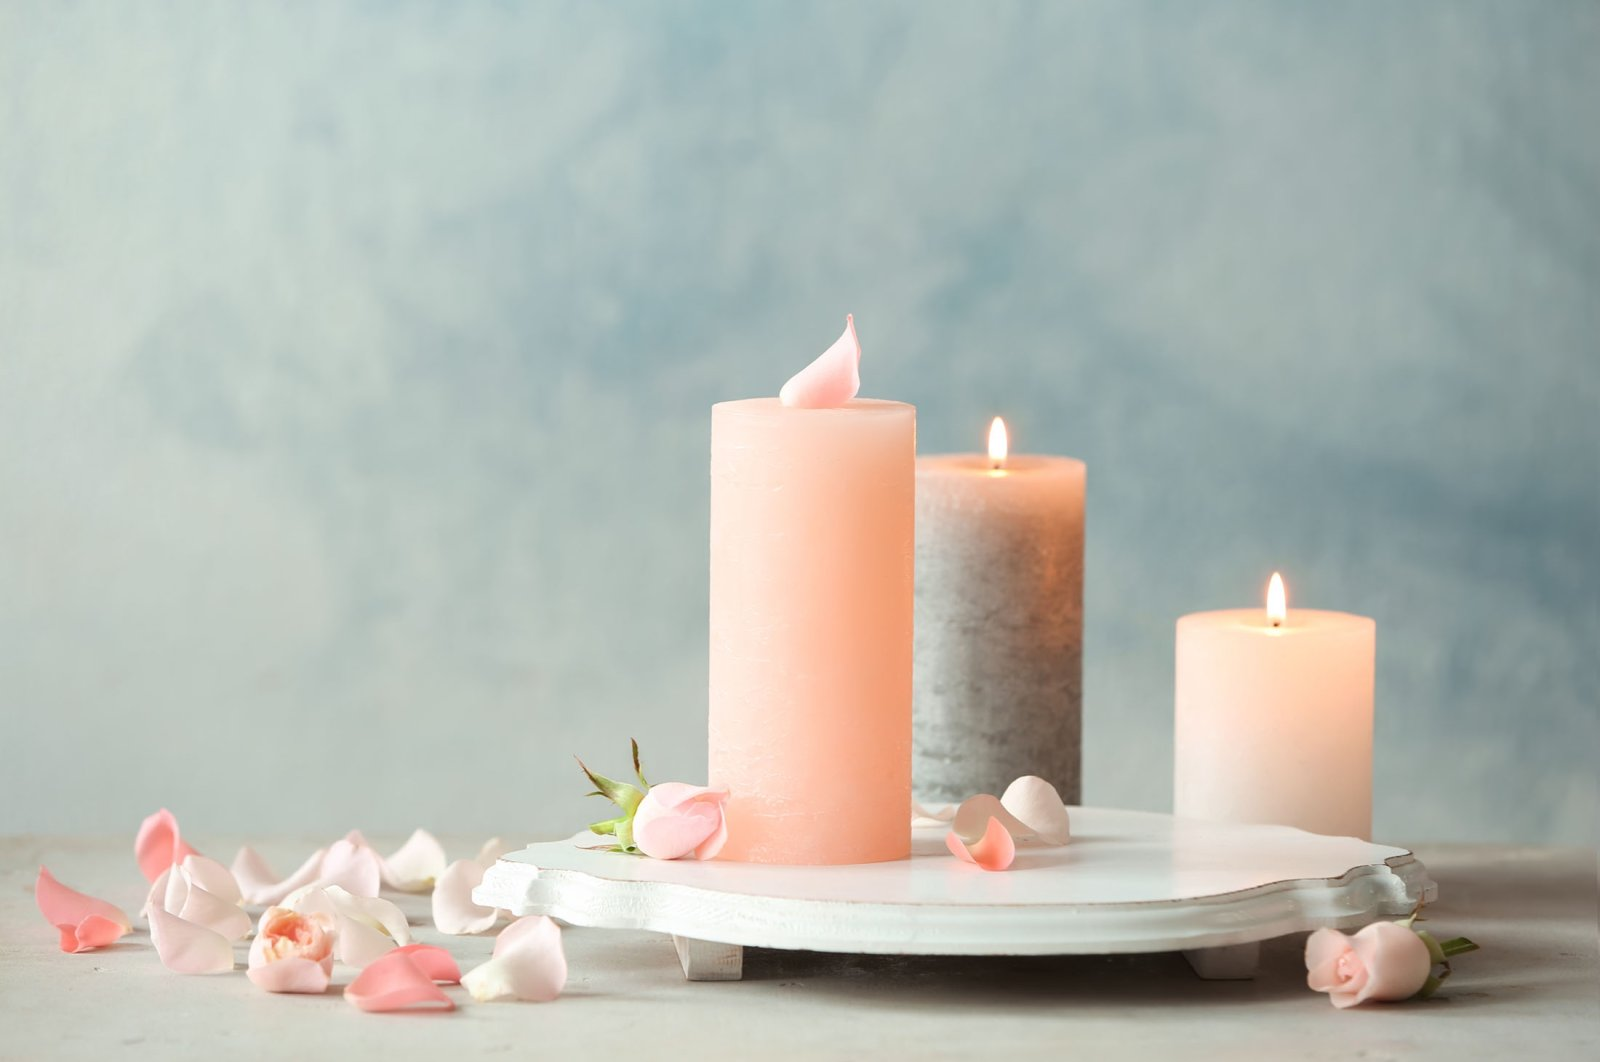 Scents are very personal; something you may find pleasant could be headache-inducing for others. (Shutterstock Photo)